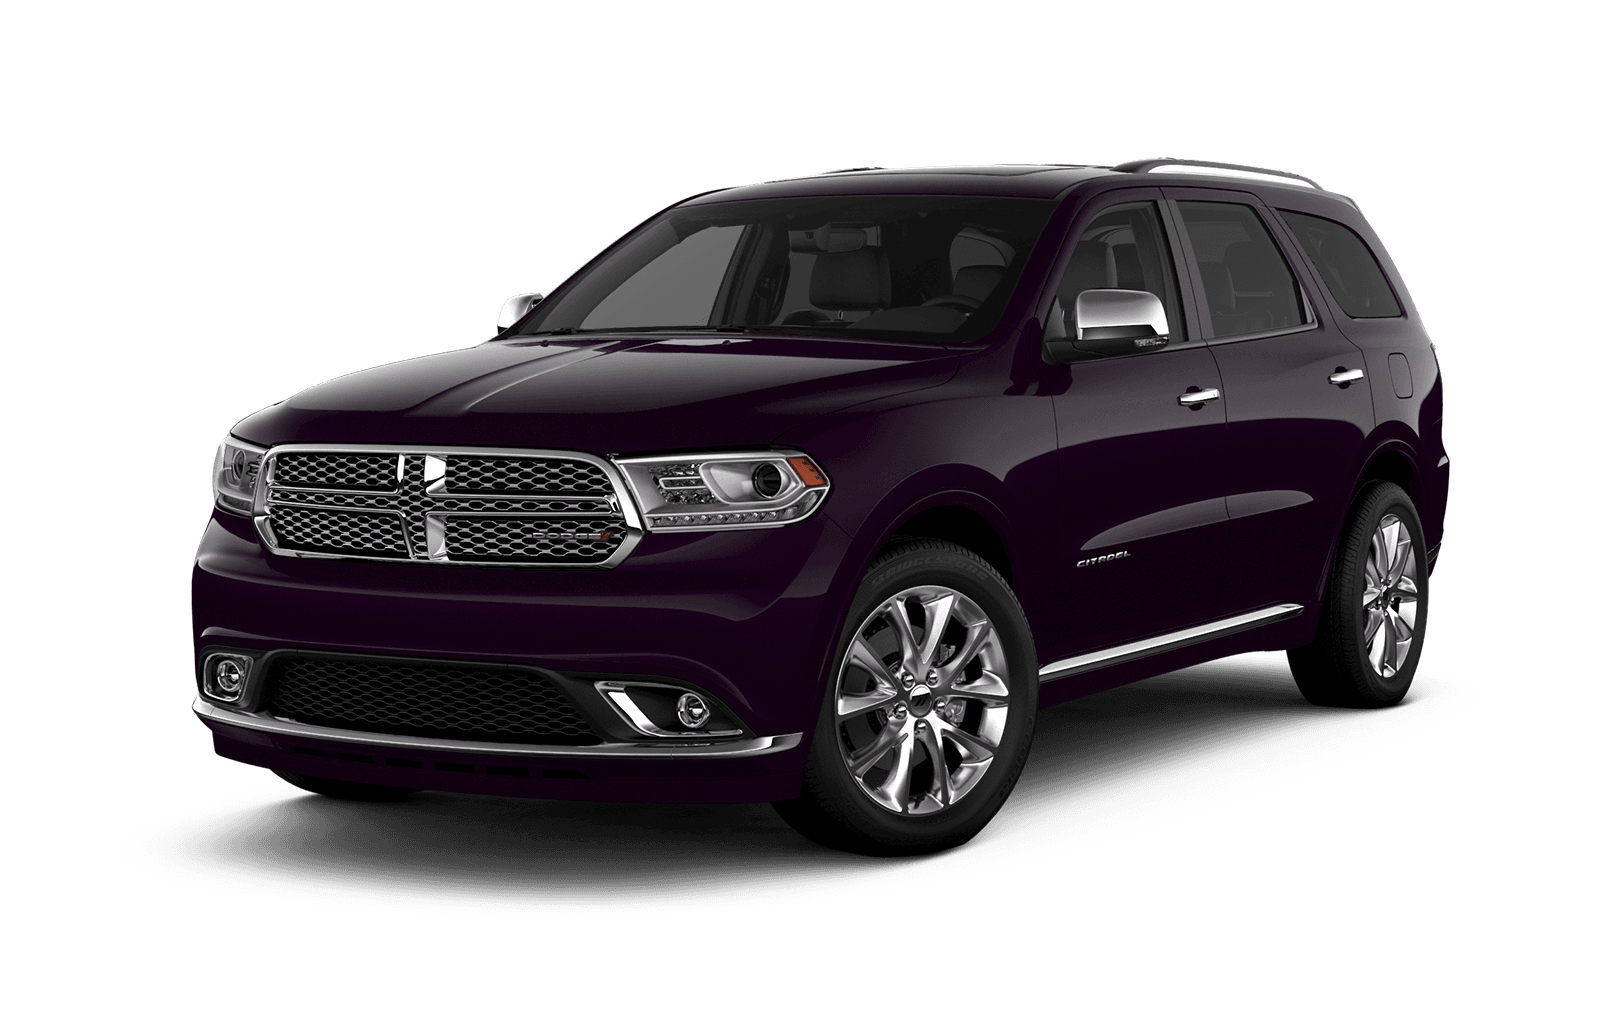 2019 Dodge Durango Full view in Violet